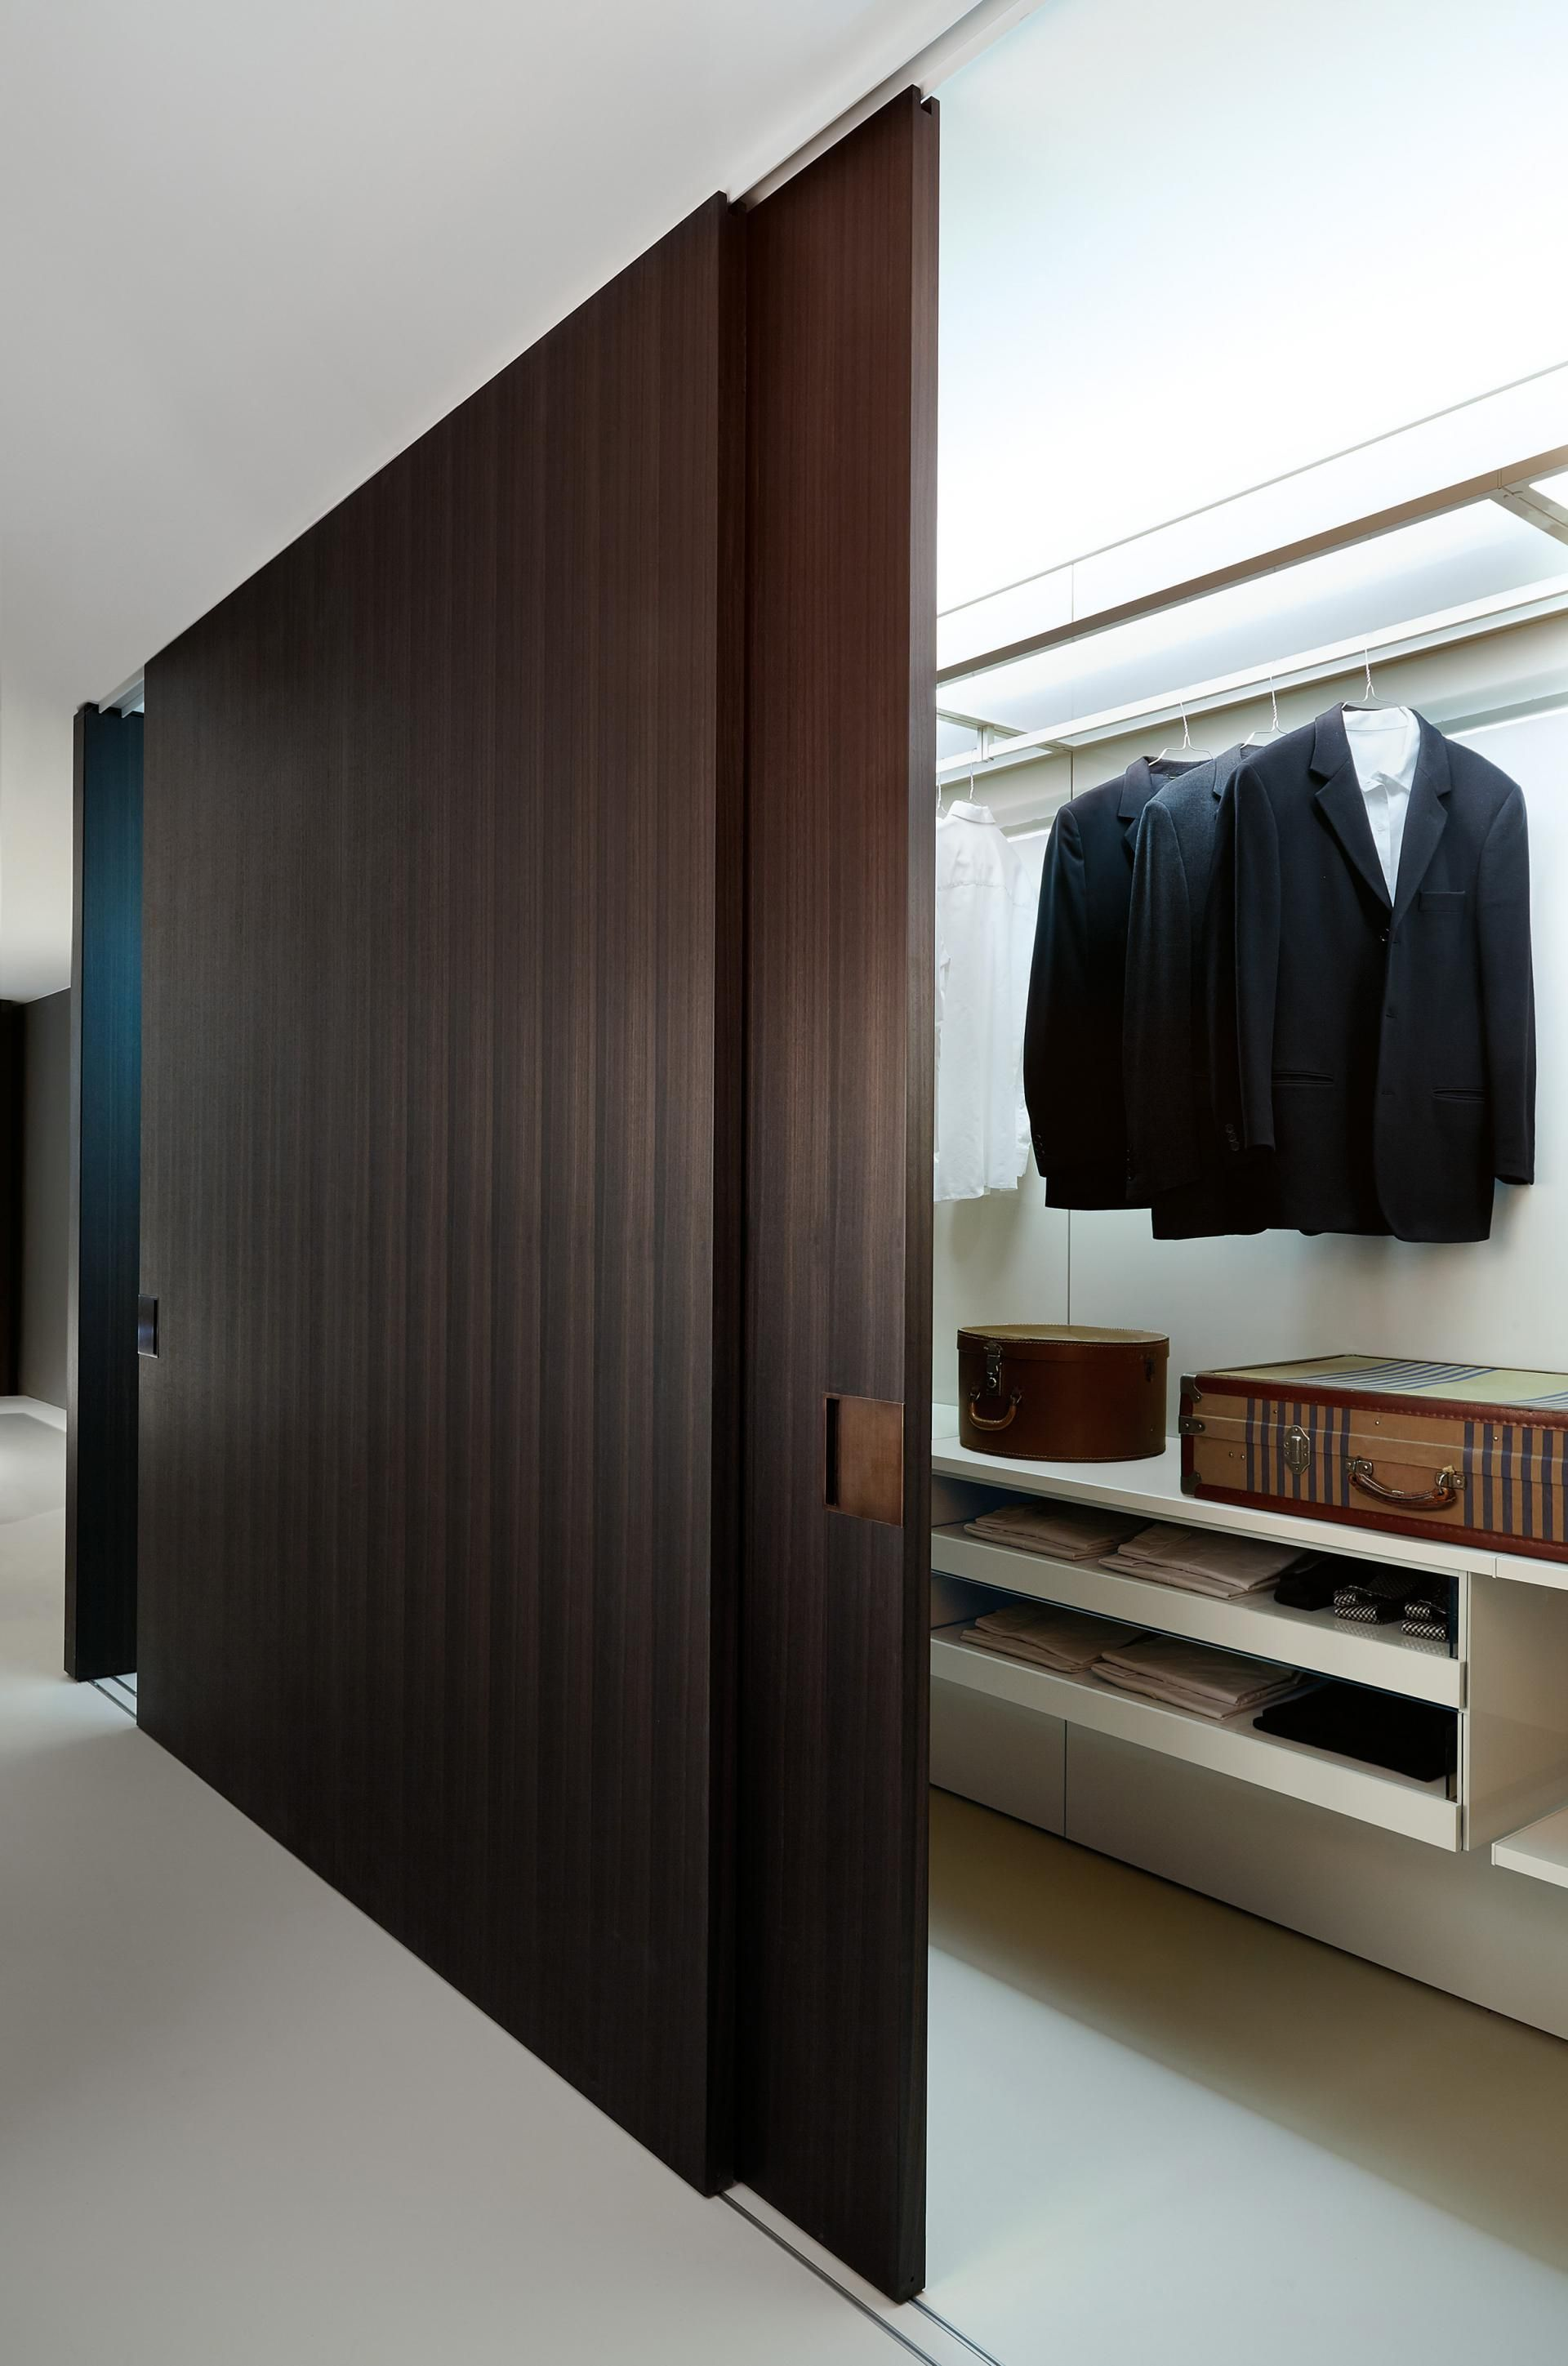 ideas reach womans unusual design concepts illinois wadrobe in amazing closet